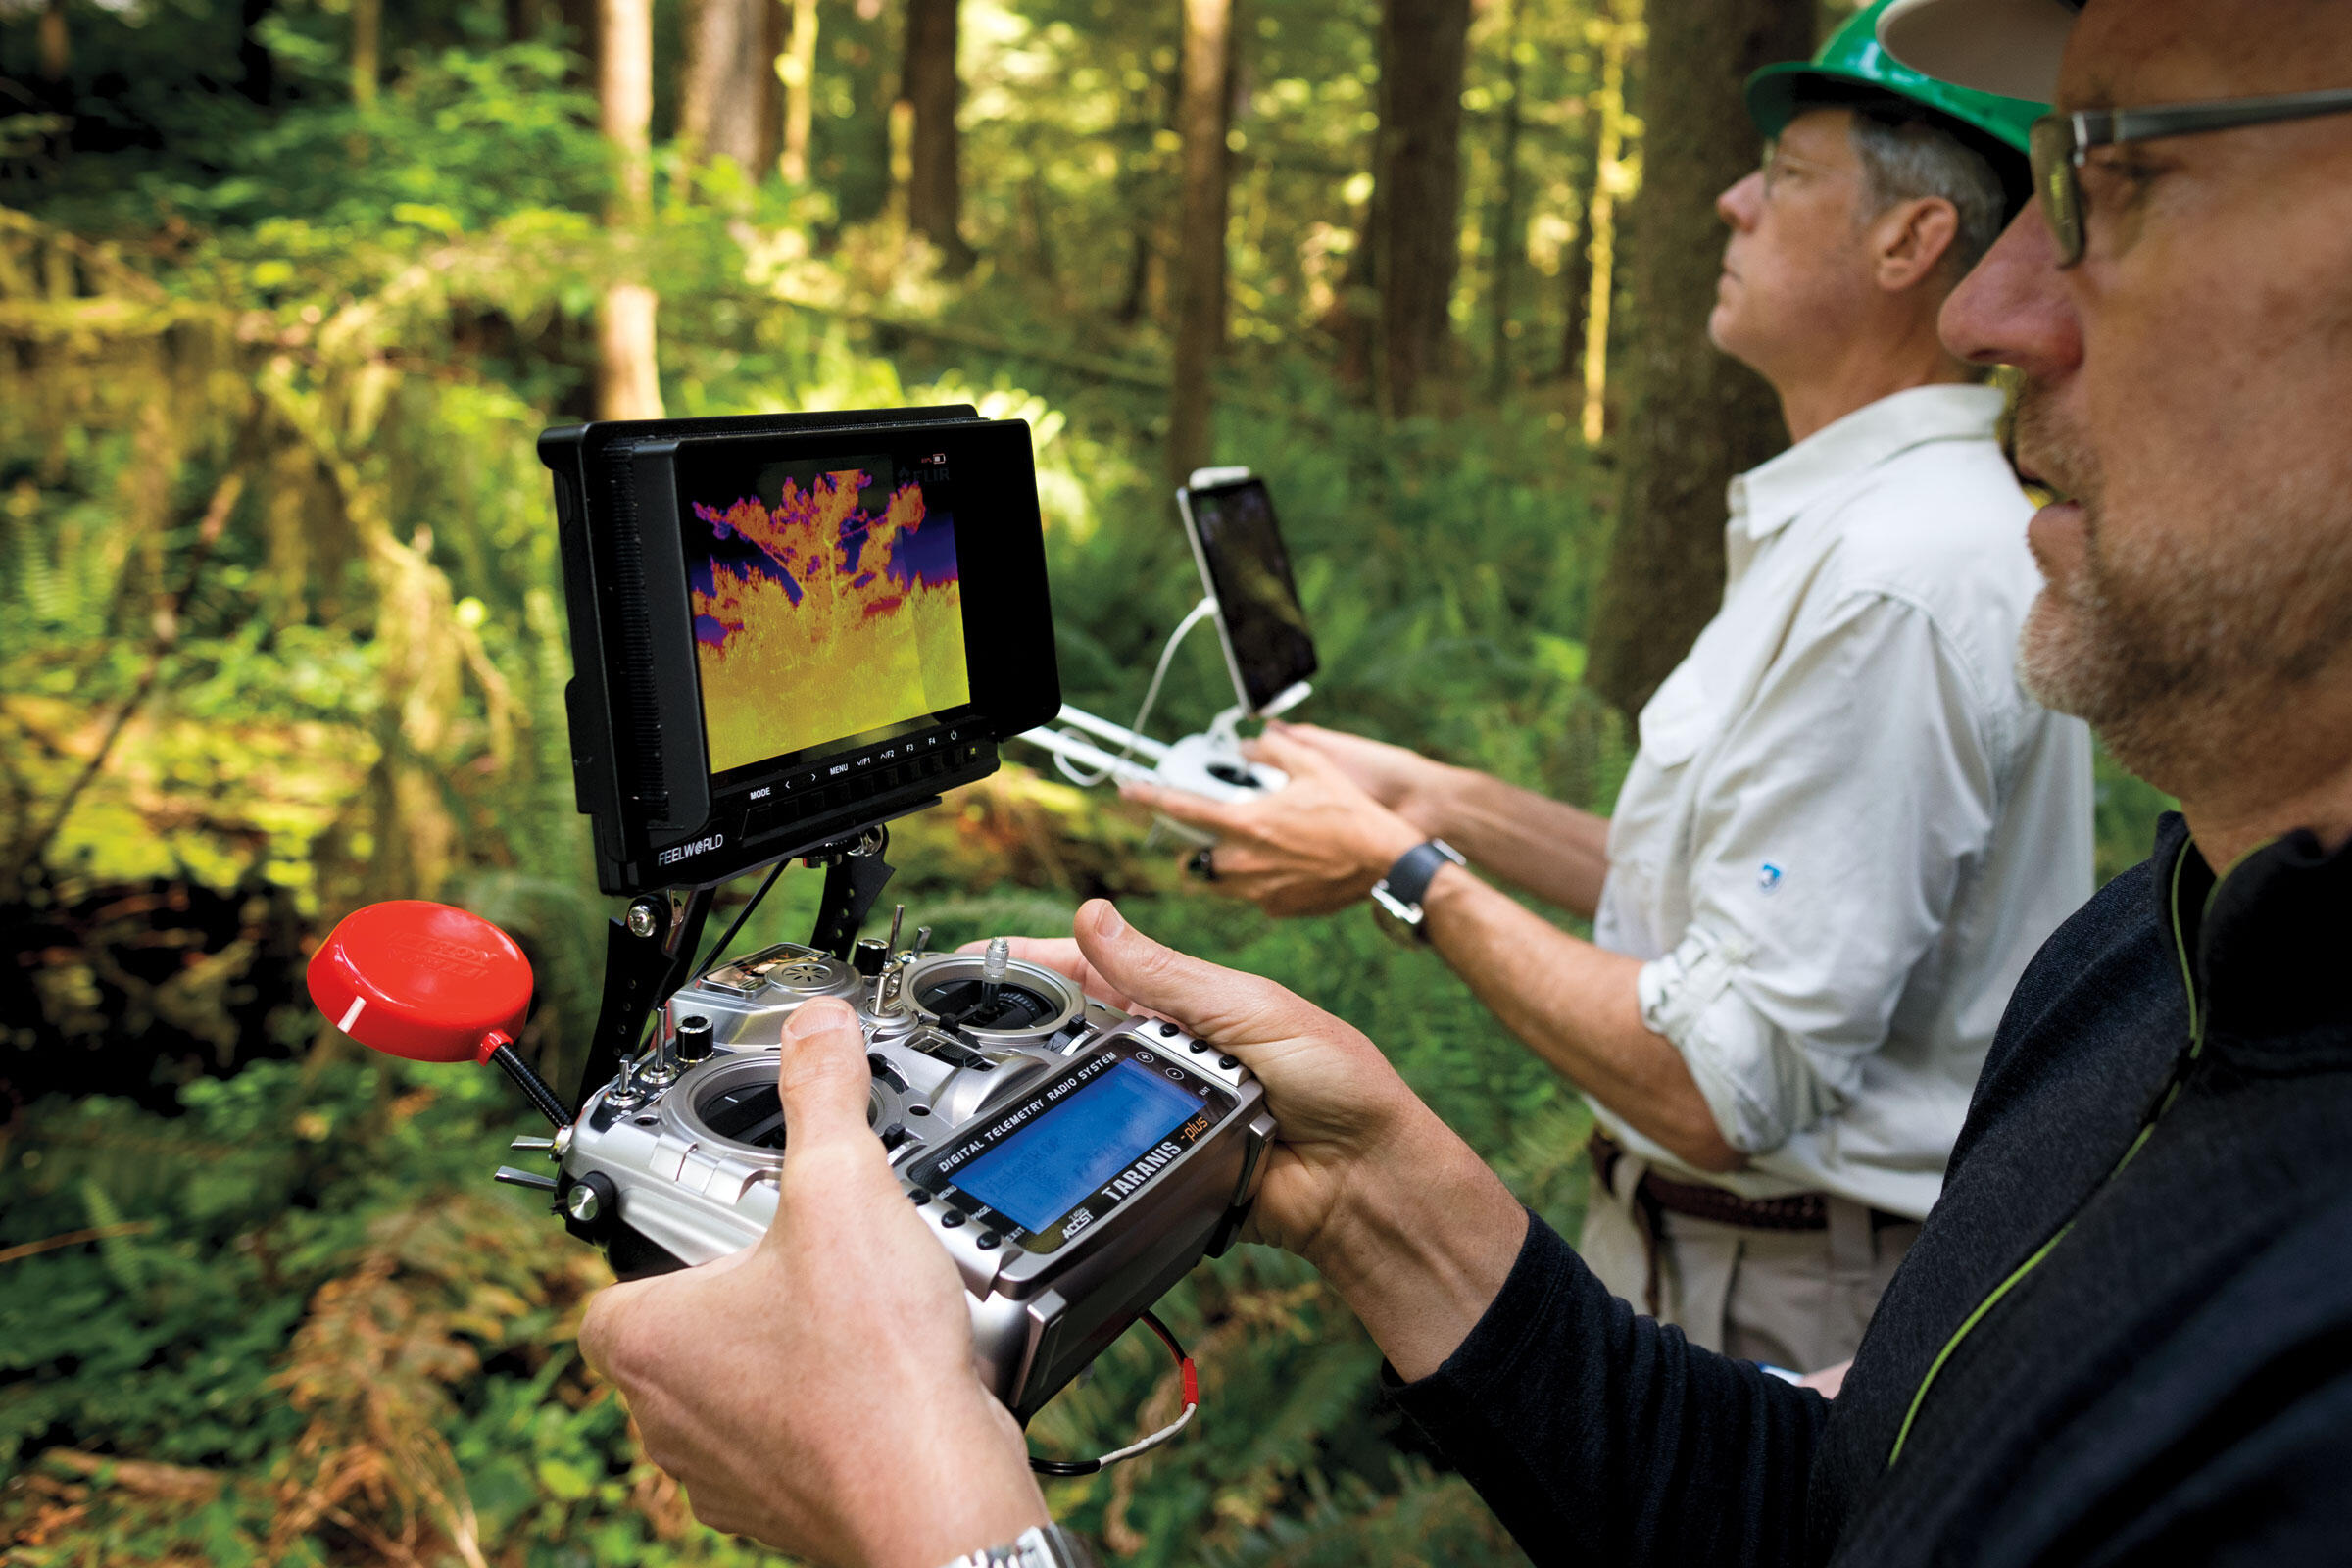 Birds show up as white-hot spots on the tablet screen. It can show false positives such as reflecting sunlight. This year the drones weren't able to definitively locate any murrelets on their nests. Jaymi Heimbuch